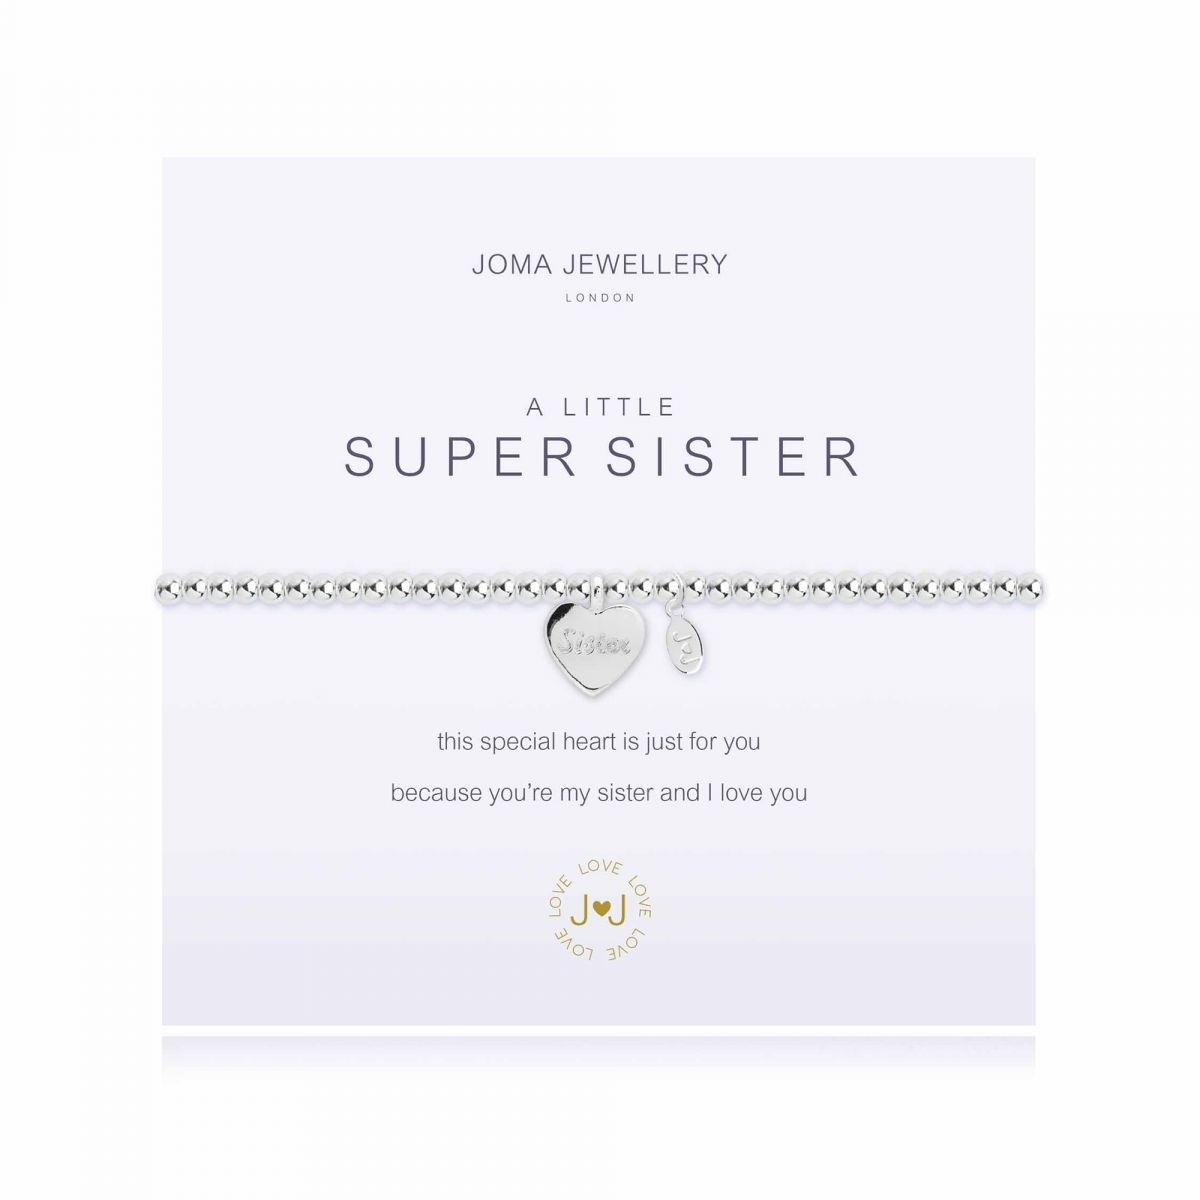 Joma Jewellery A Little 'Super Sister' Bracelet